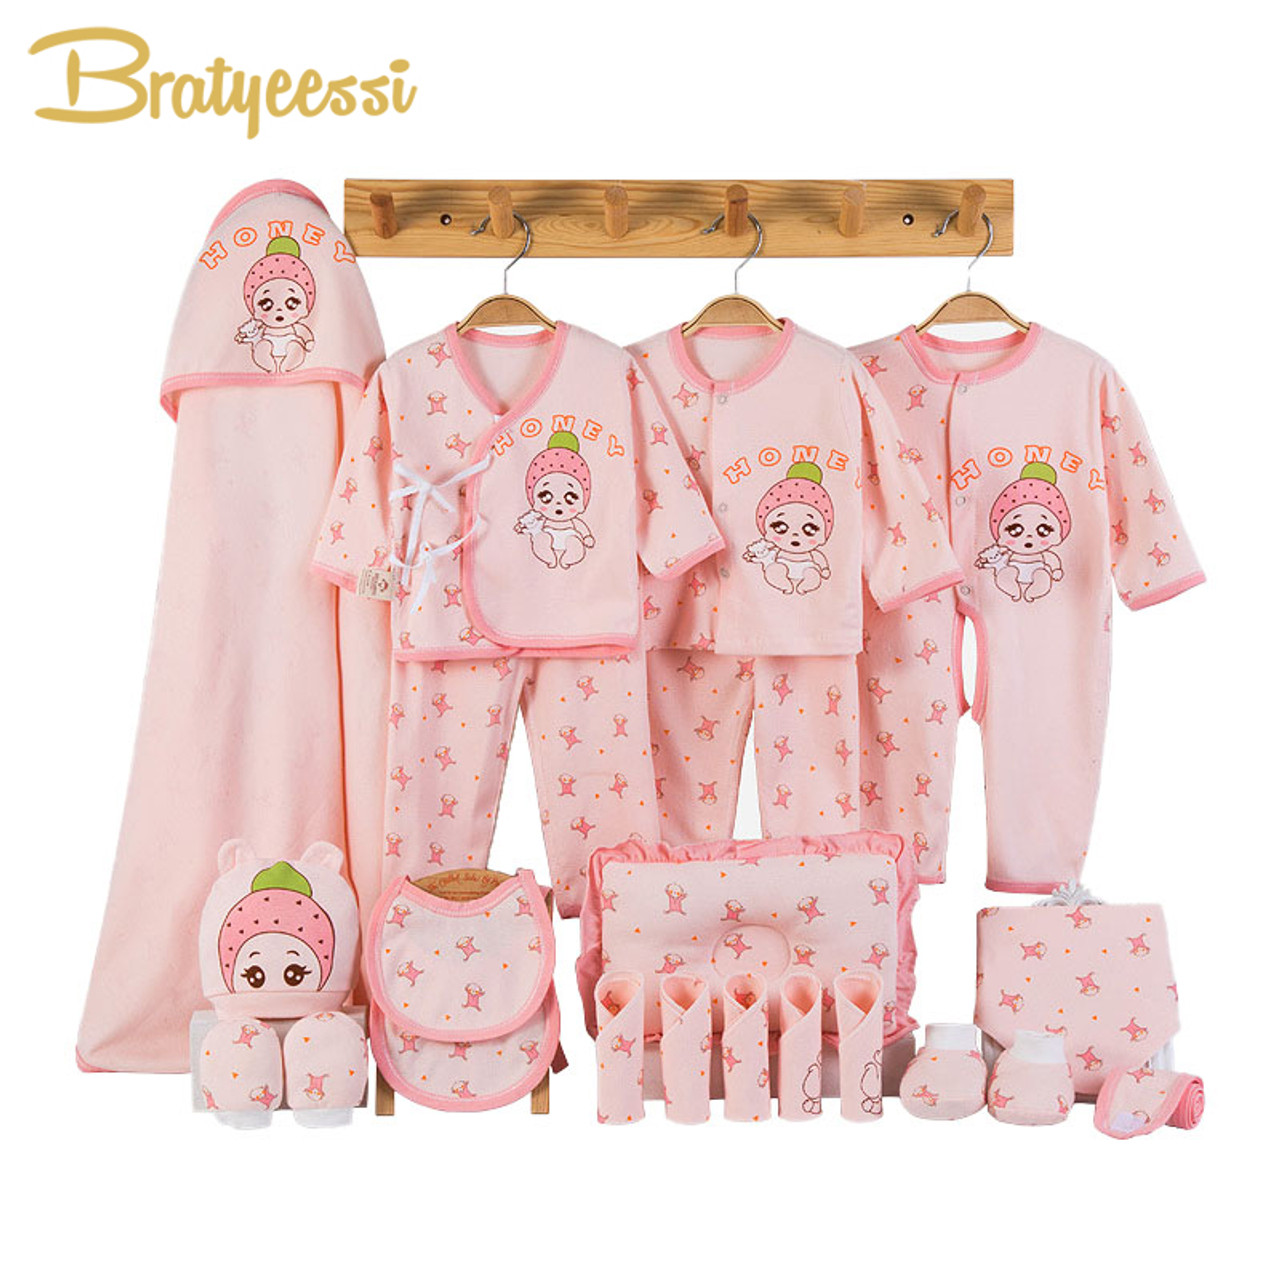 494e8210032aa0 Newborn Baby Clothes Soft Cotton Toddler Baby Boy Girl Clothes Set Cartoon Infant  Clothing New Born Gift Set 3 Colors - OnshopDeals.Com